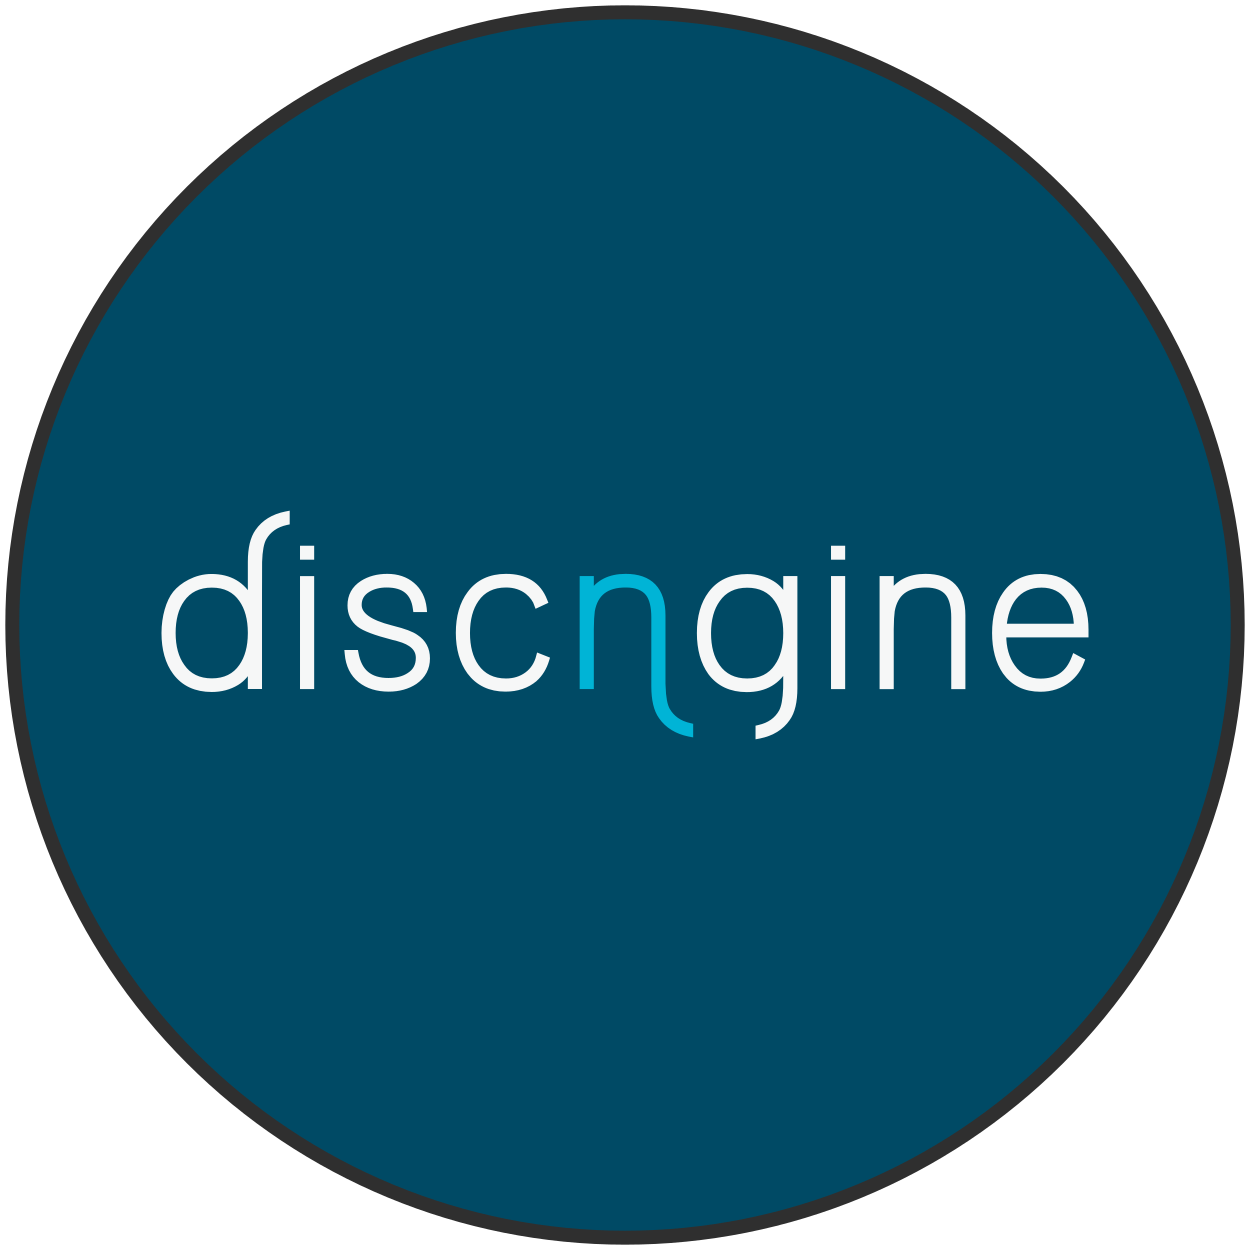 Discngine - Enhancing Life Science Research